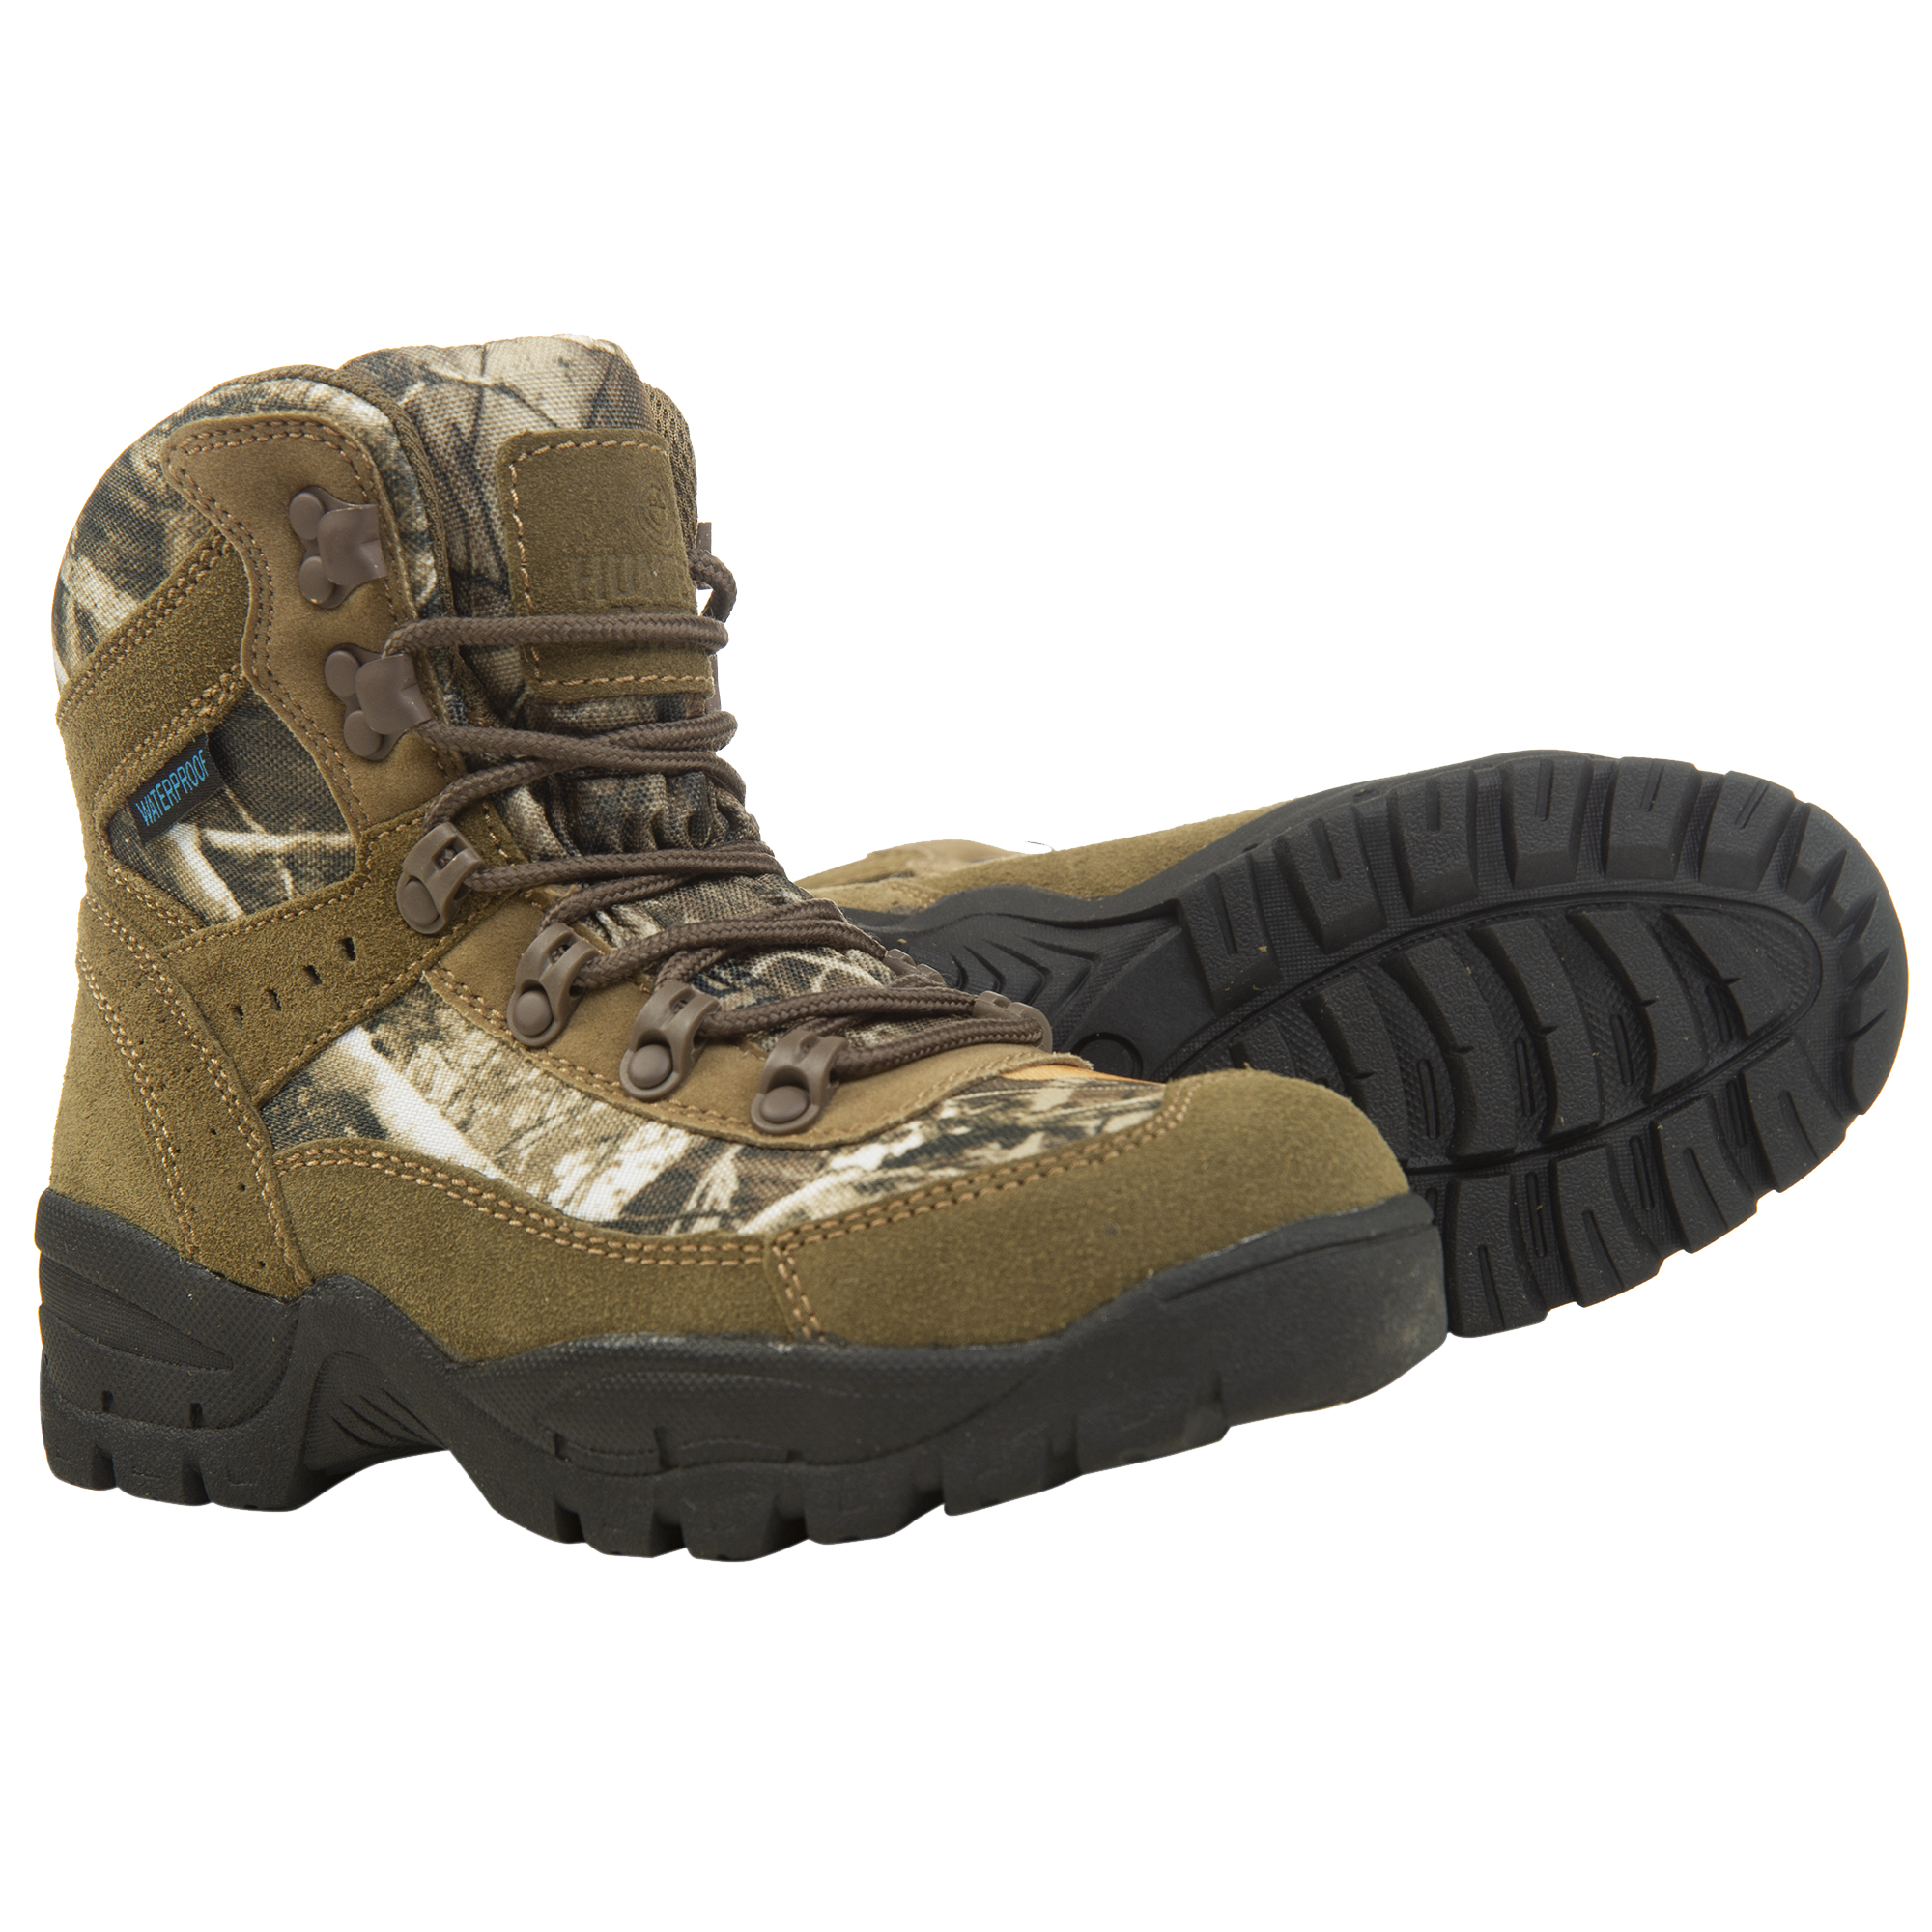 Hunter's Choice Men's 7″ Venari Waterproof Field Boot